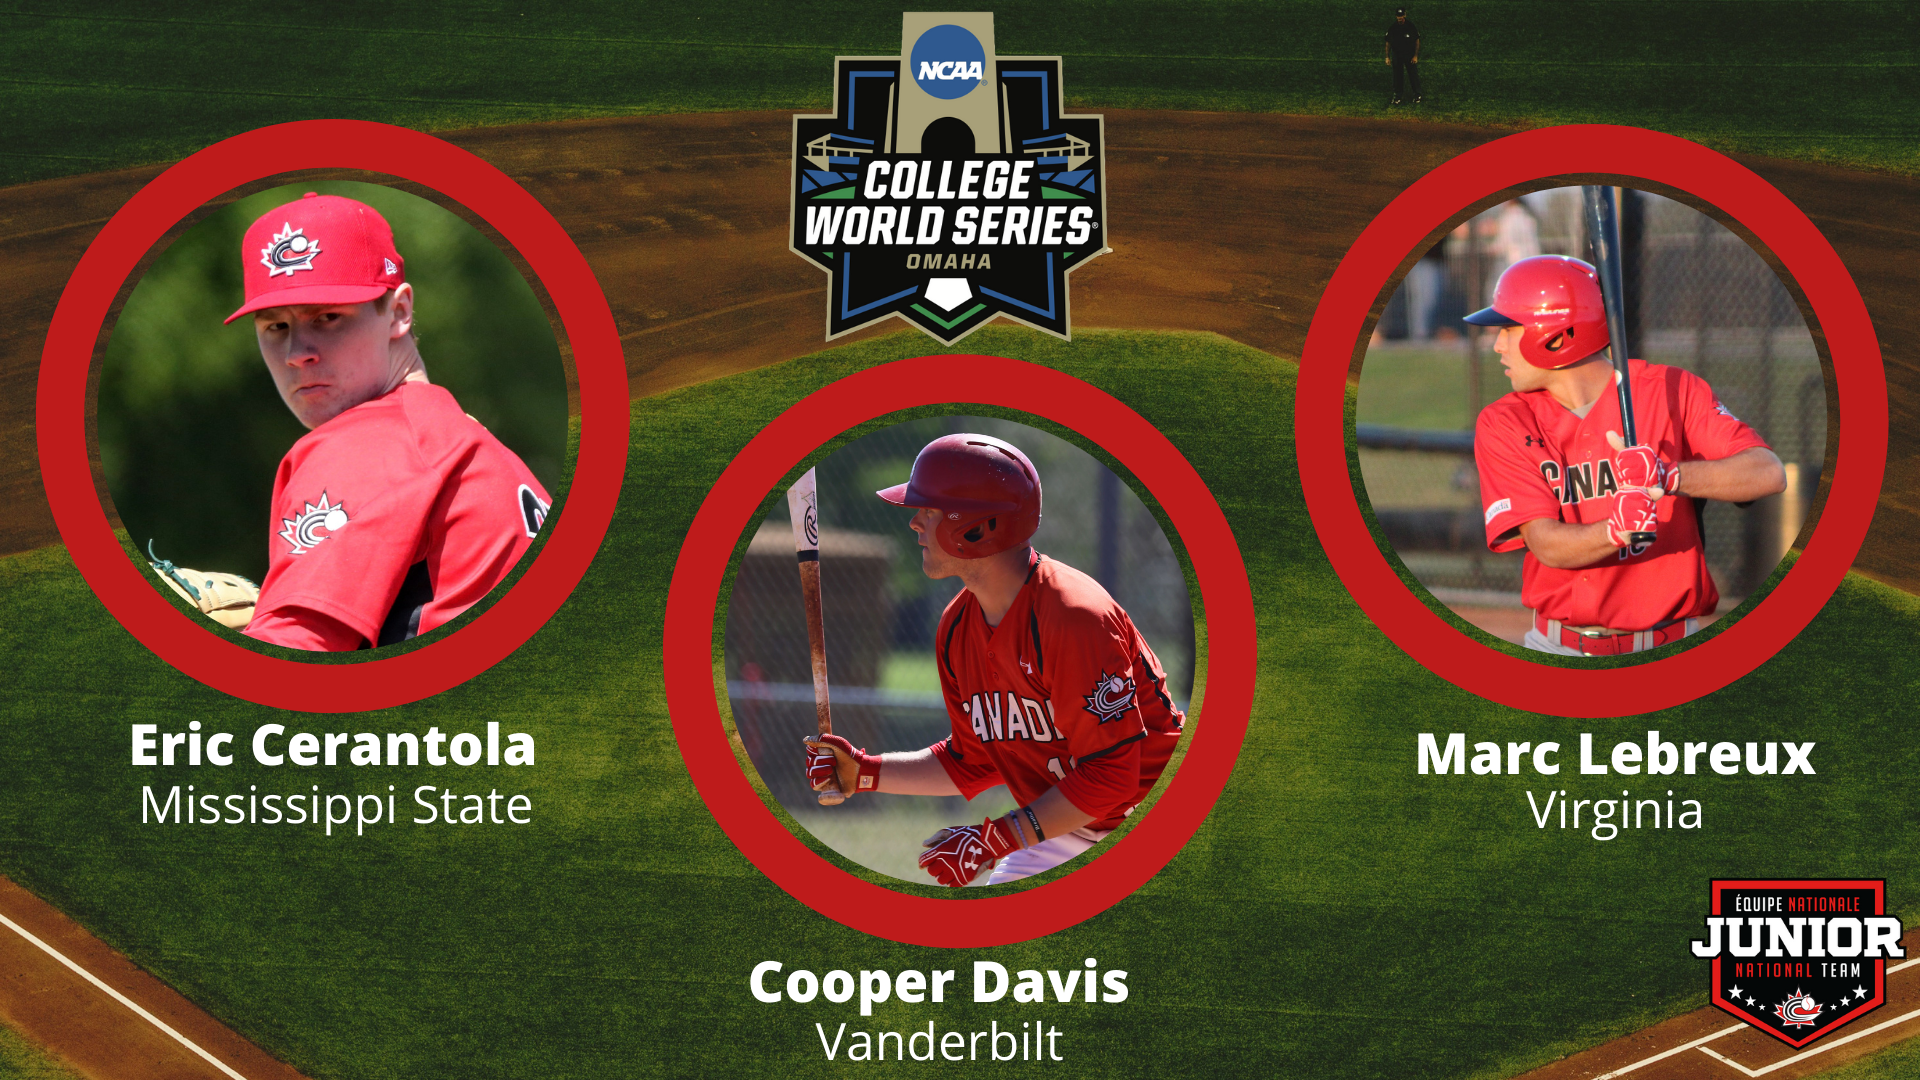 Three Canadians chasing College World Series title